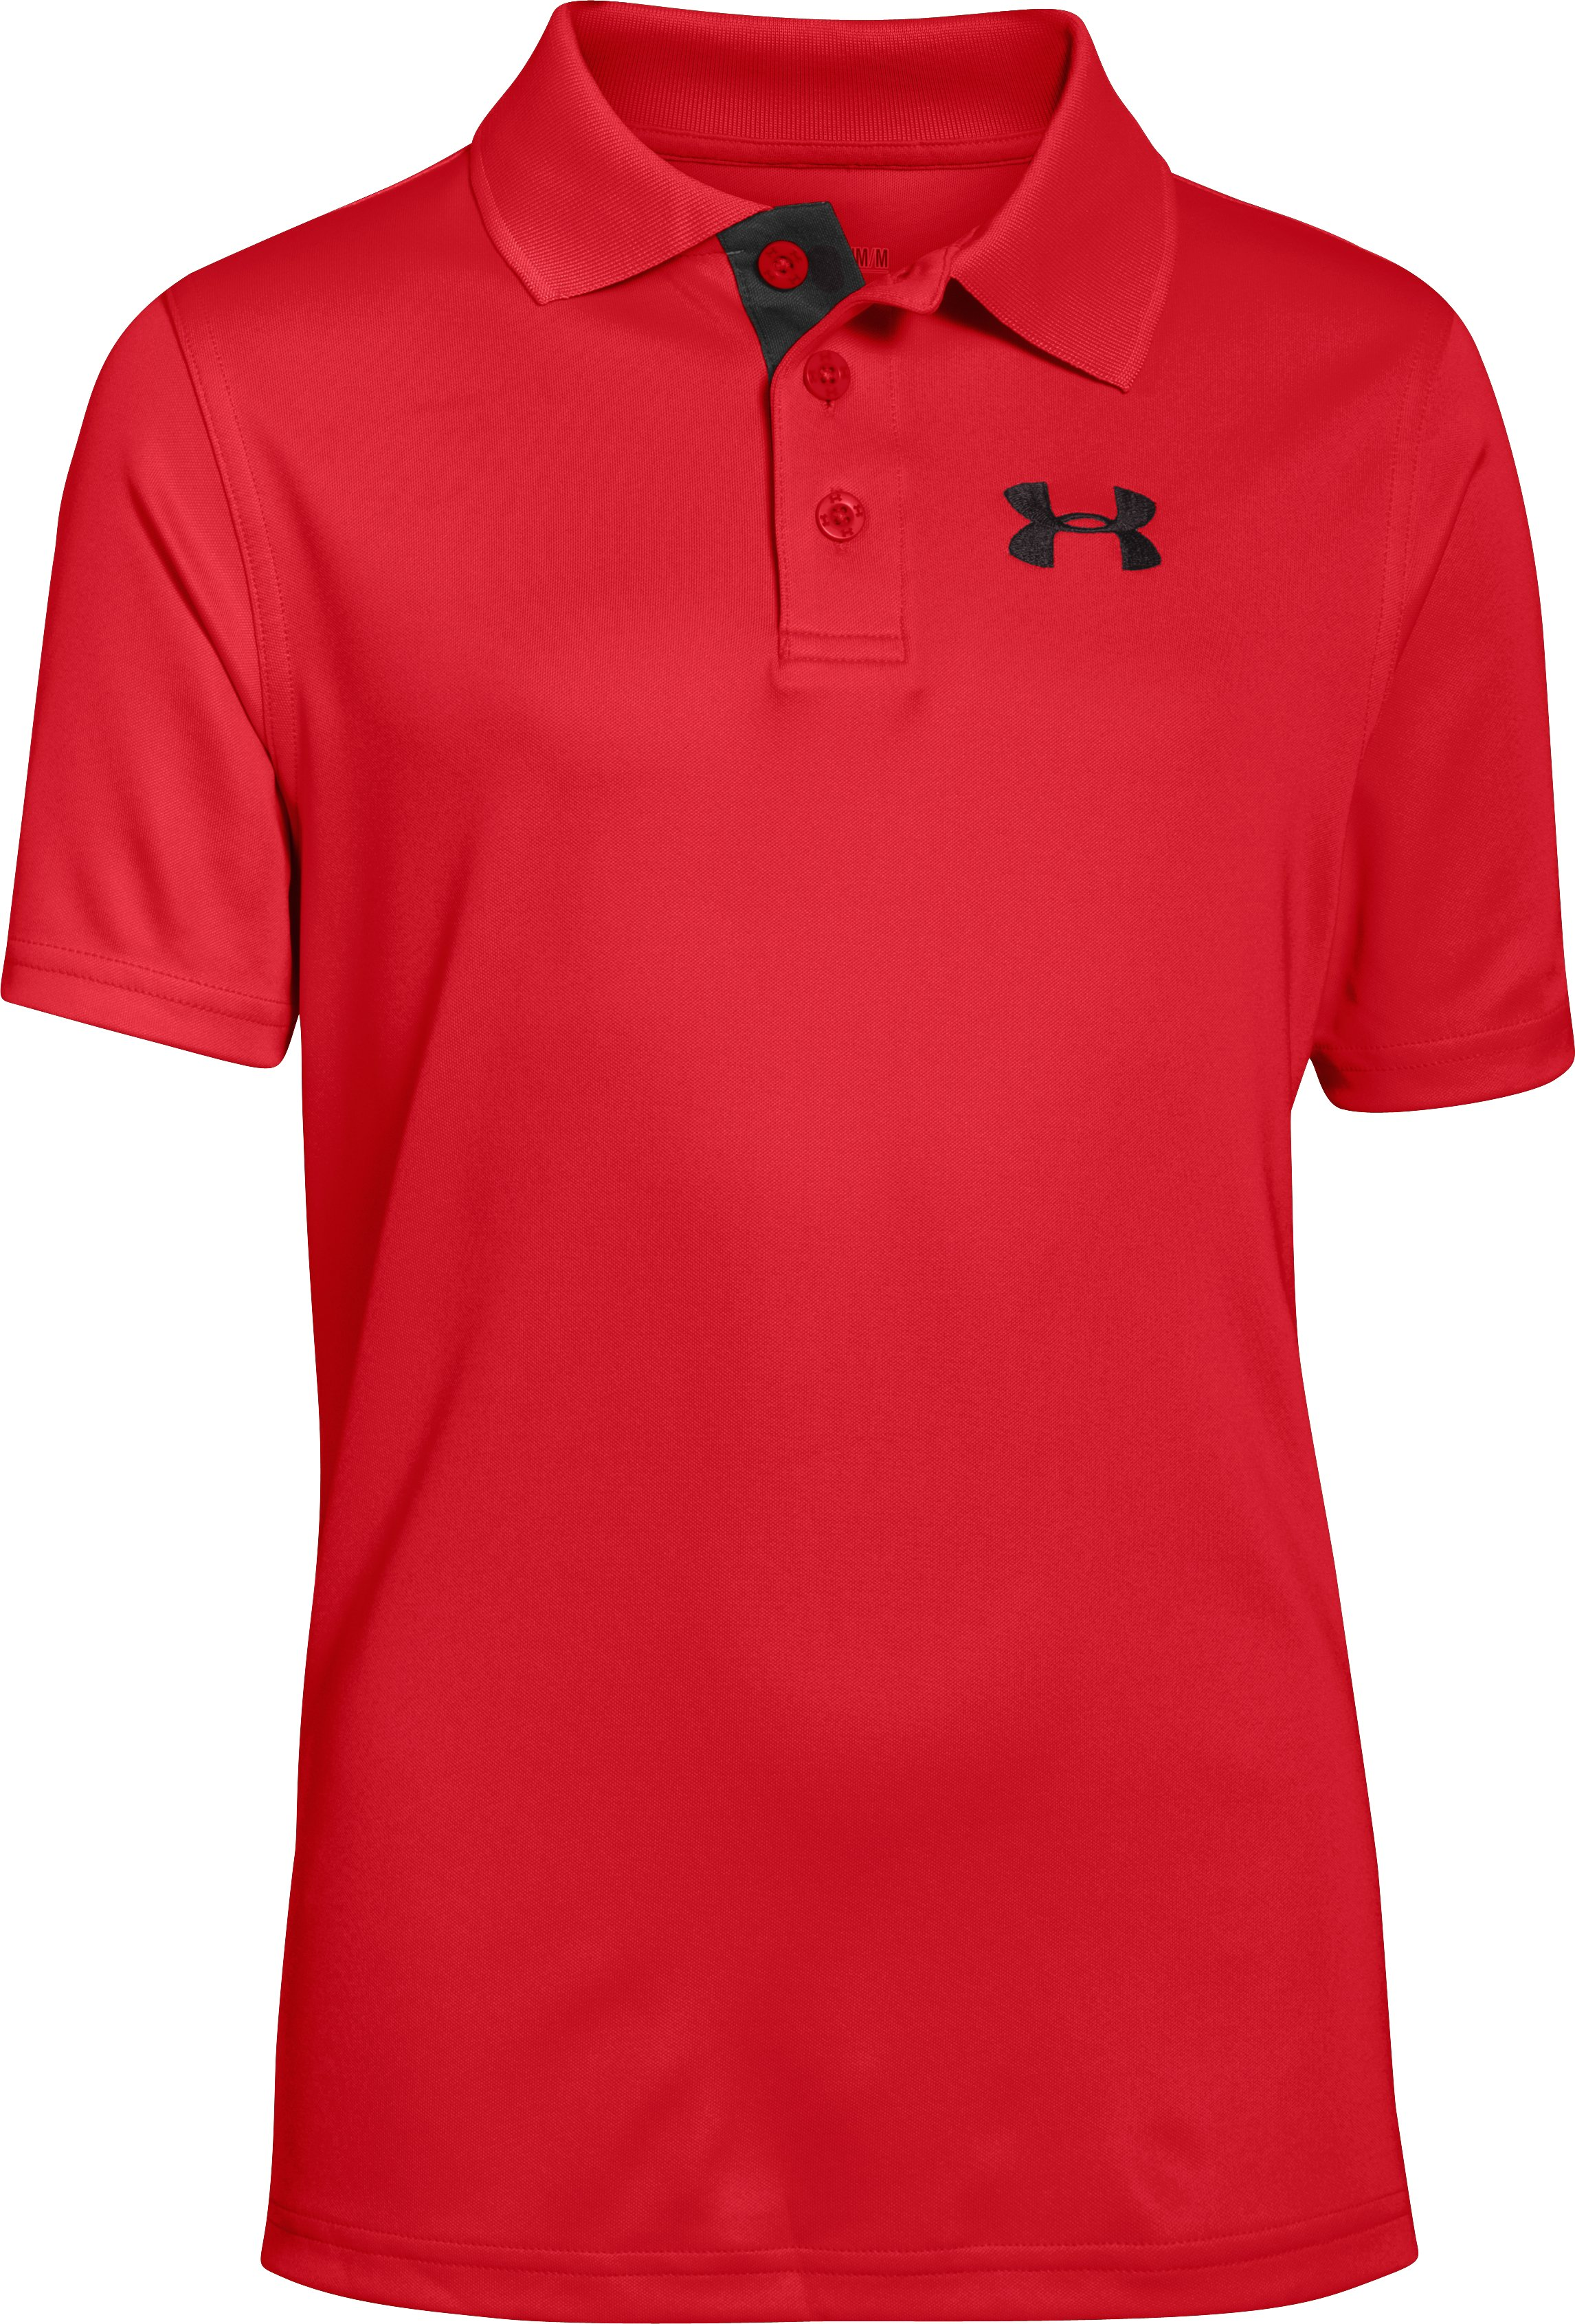 Boys' UA Match Play Polo, RISK RED